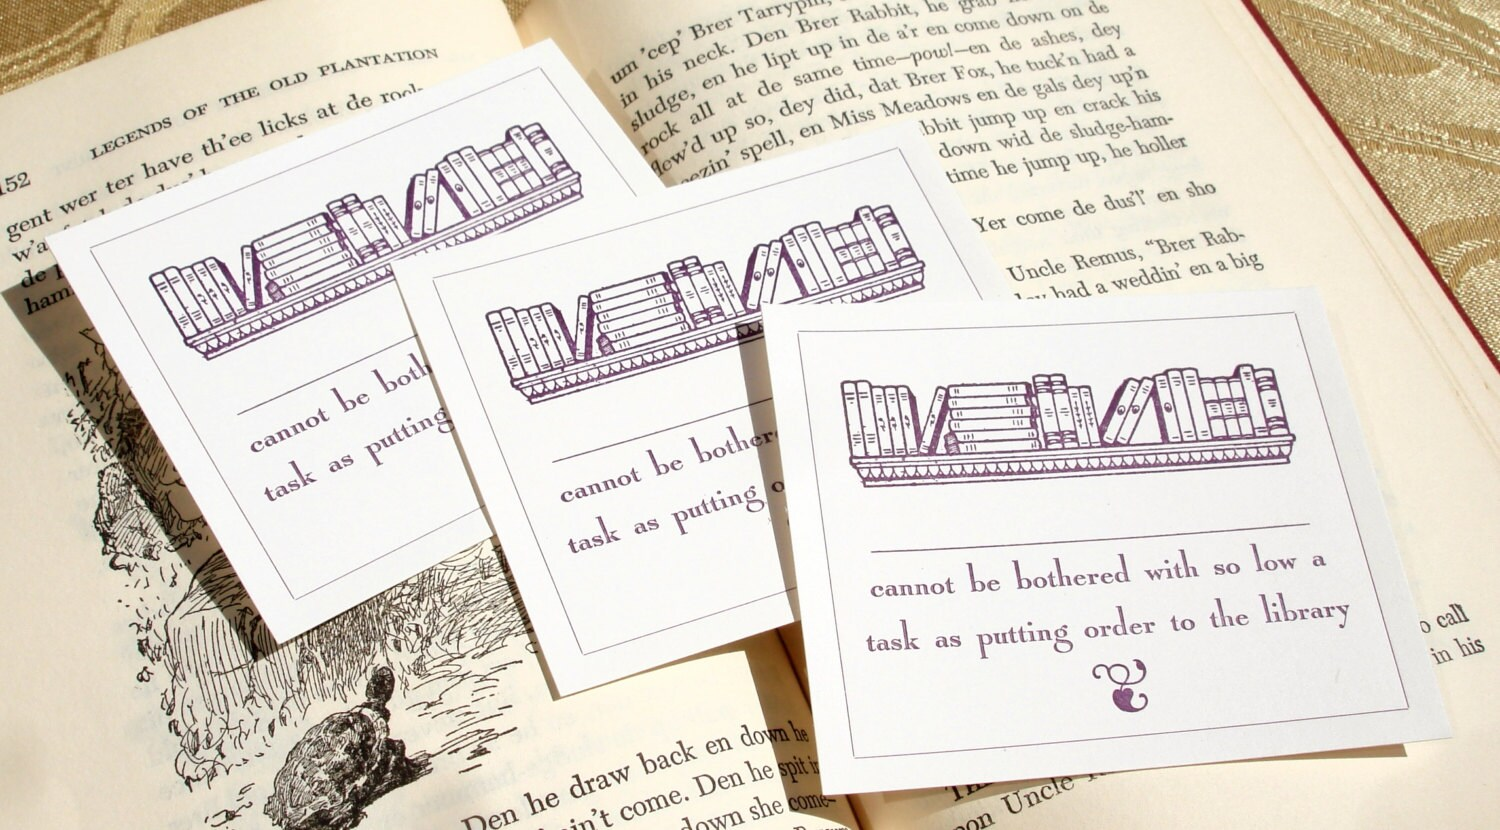 Dear Reader cannot be bothered to tidy the Library! - SNOBBY INTELLECTUAL -  Letterpress Bookplates - Set of 10